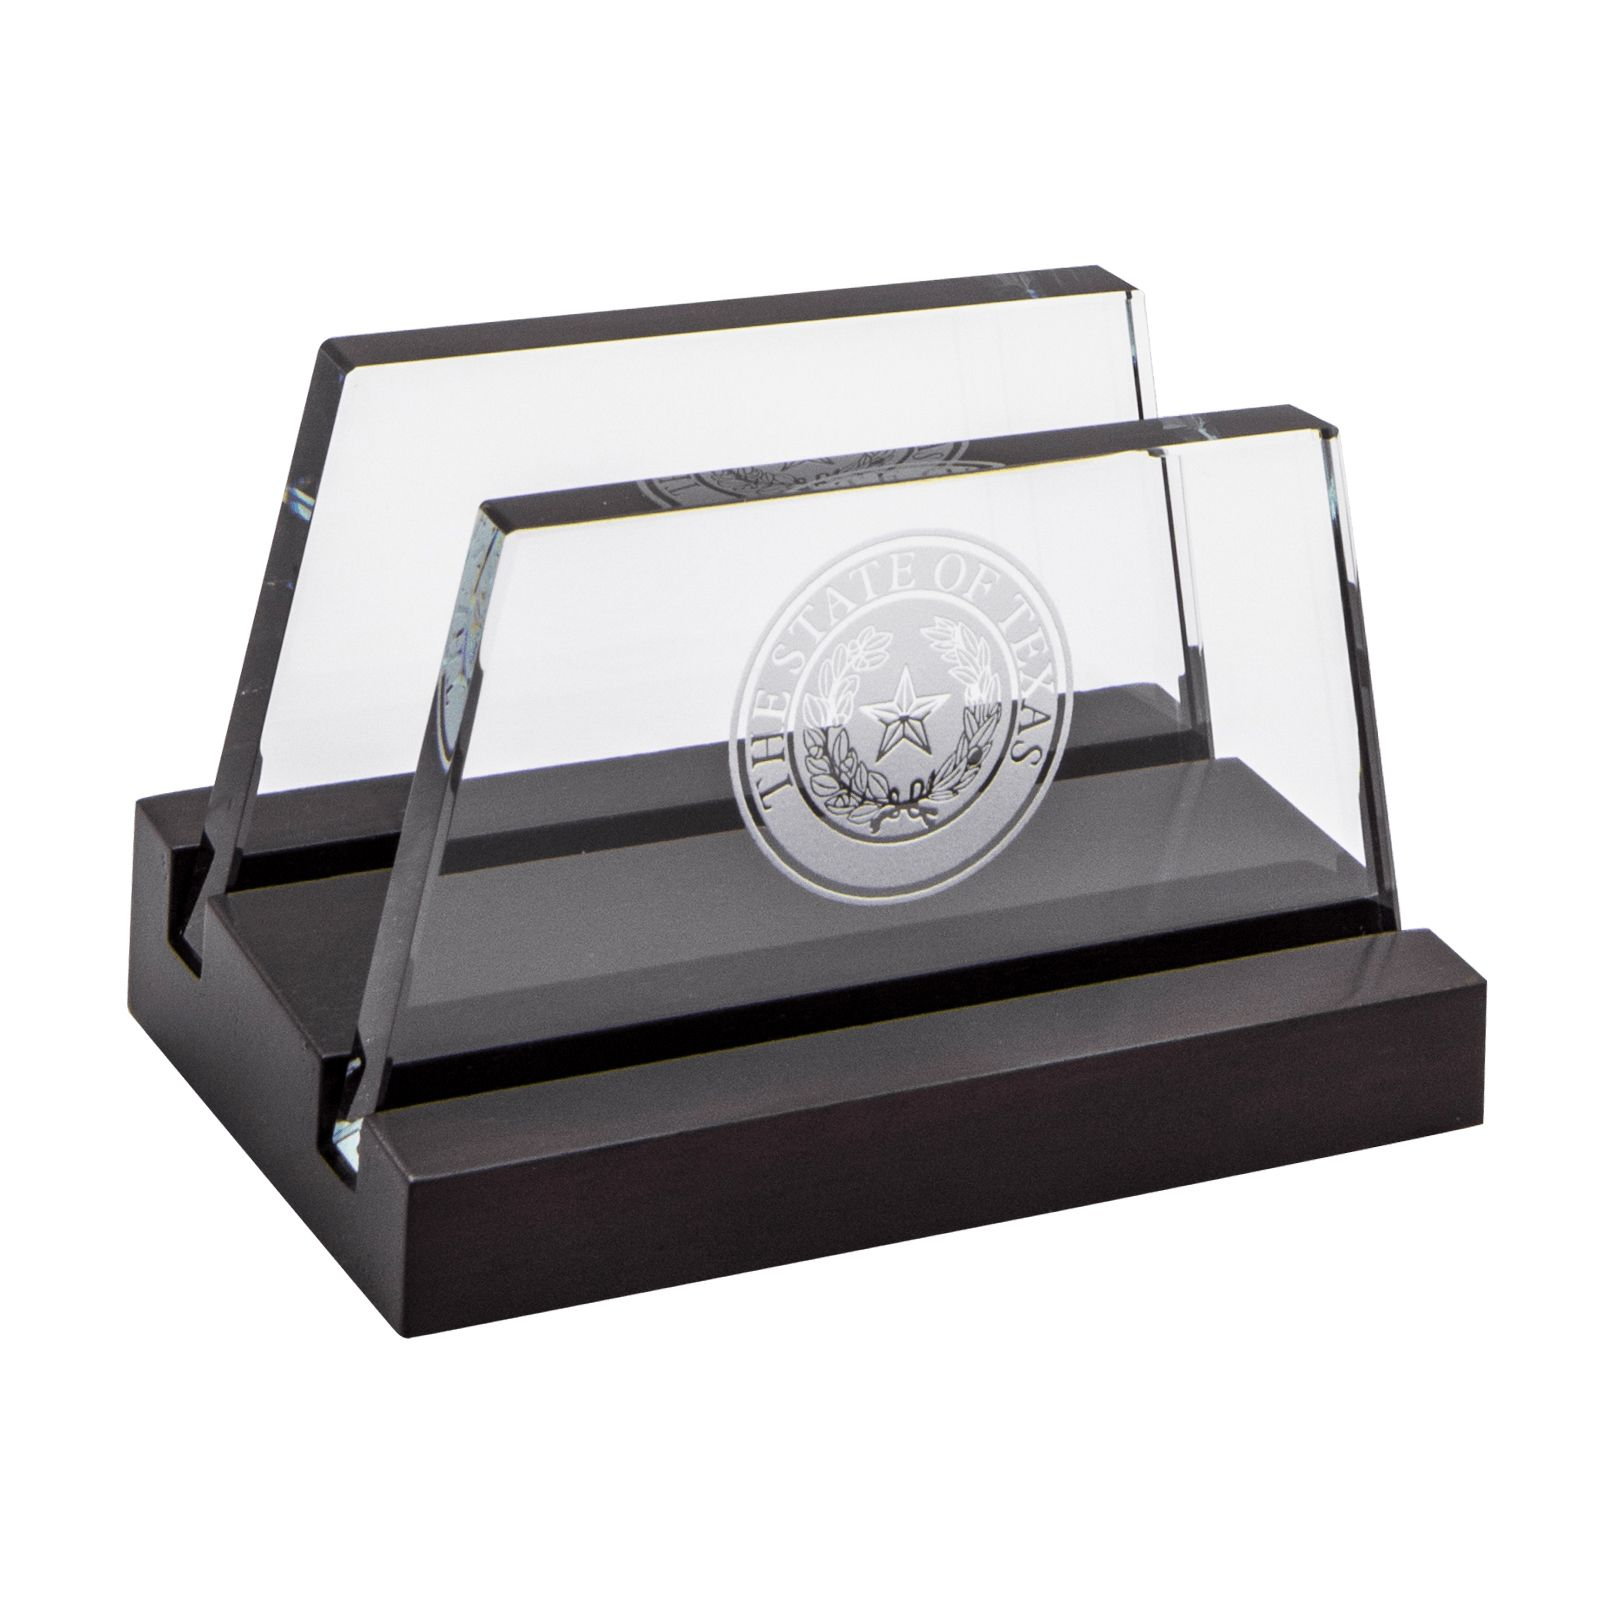 Texas State Seal Wood and Glass Desk Business Card Holder